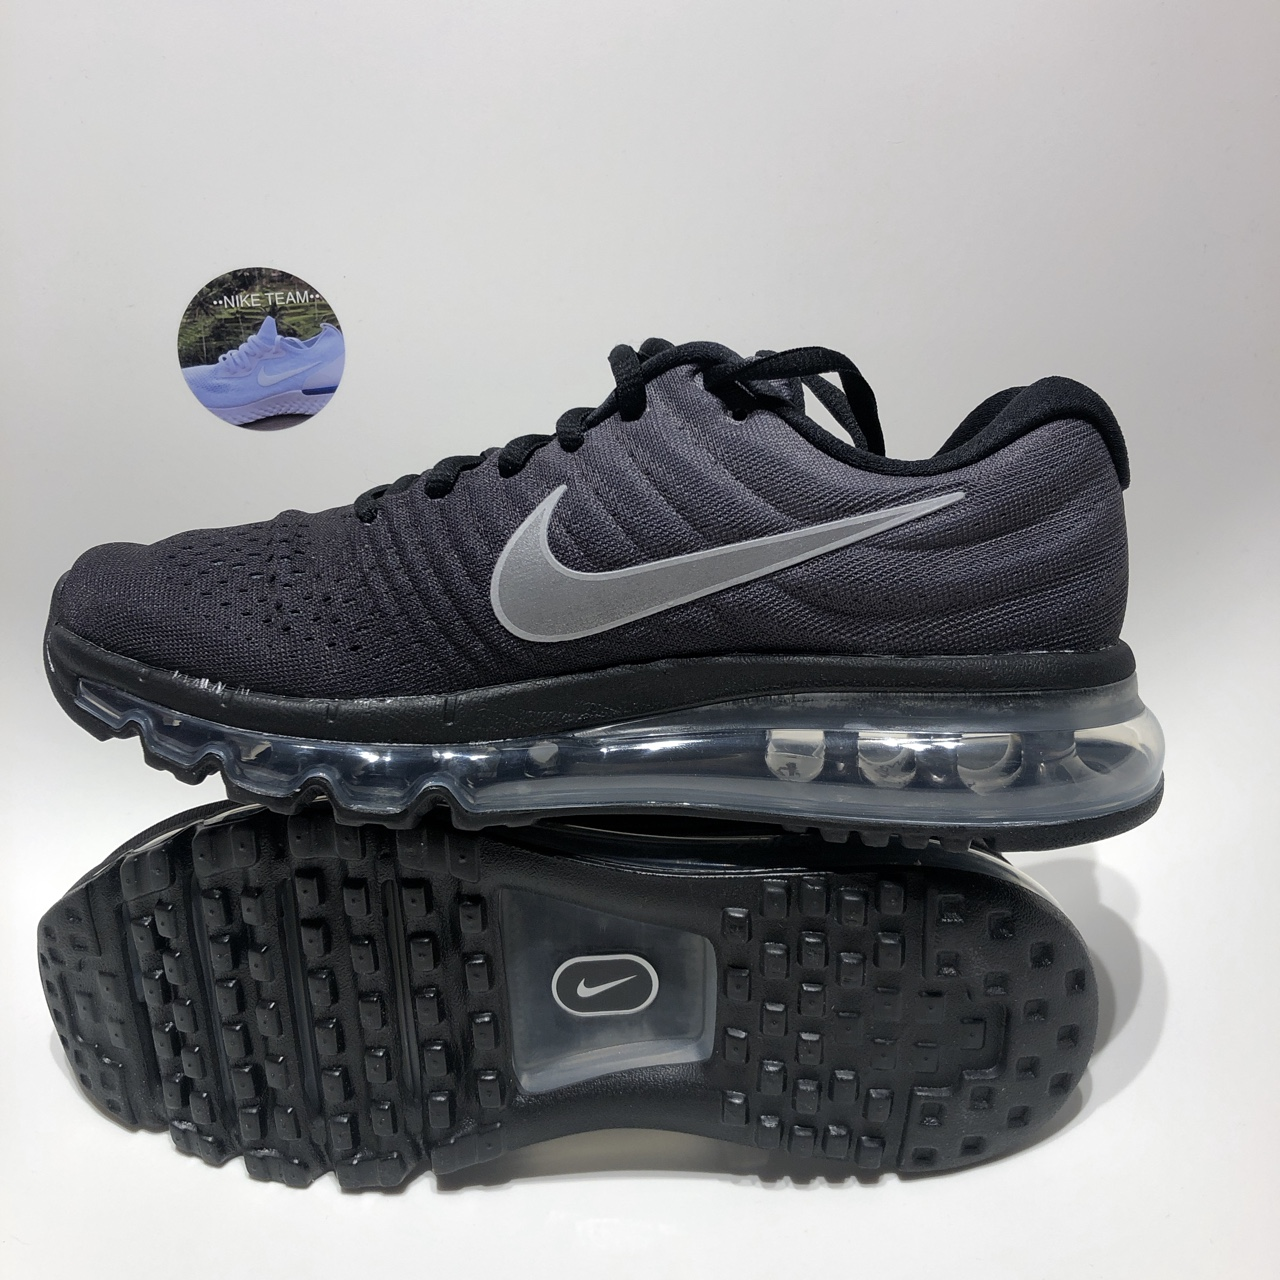 new styles 6aac2 a6427 Nike Air Max 2017(GS)Anthracite/Black/Metallic Size... - Depop